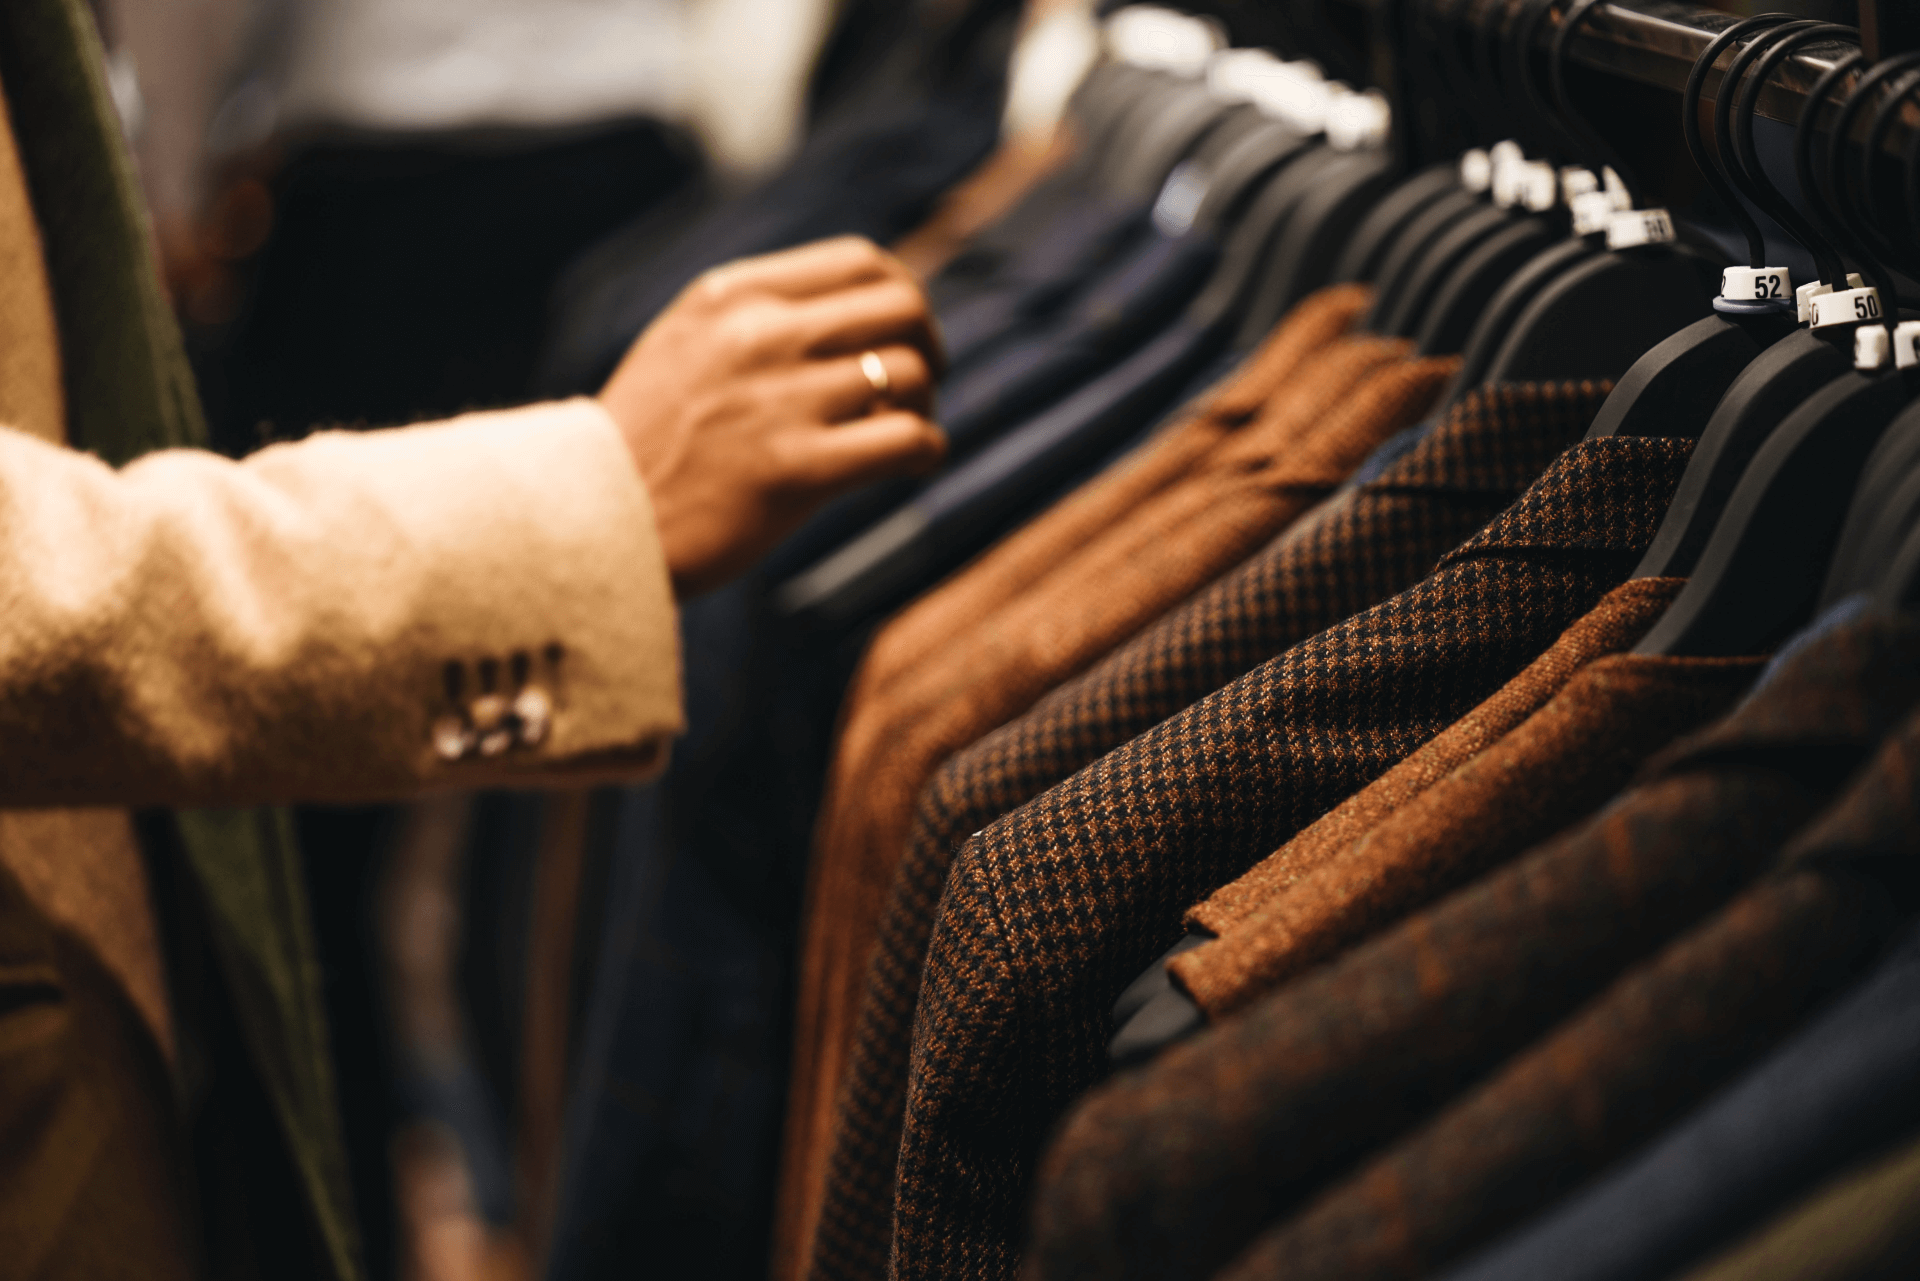 Price planning for luxury brands is vastly different from EDLP brands